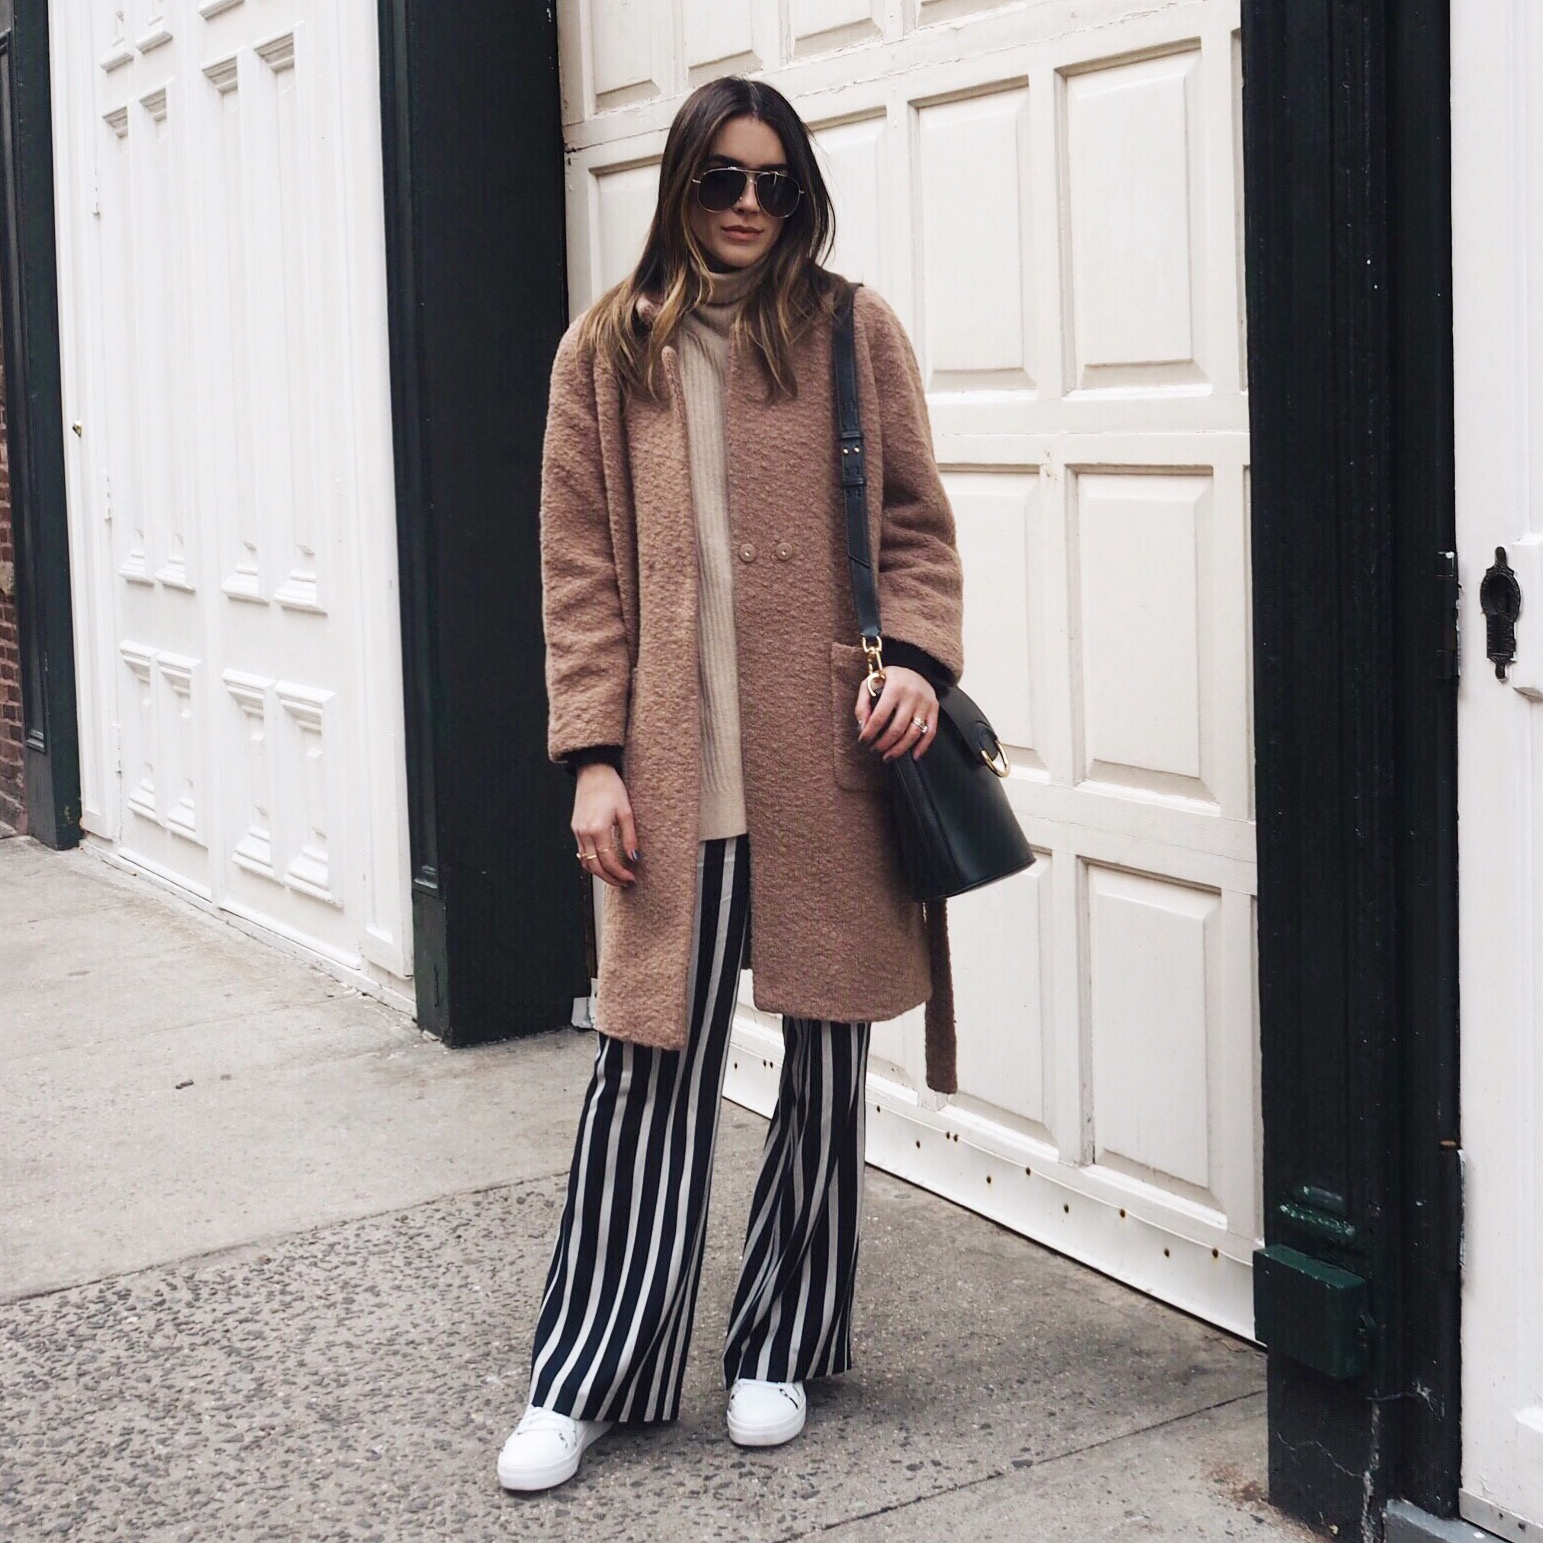 Ganni Fenn Coat Striped Pants